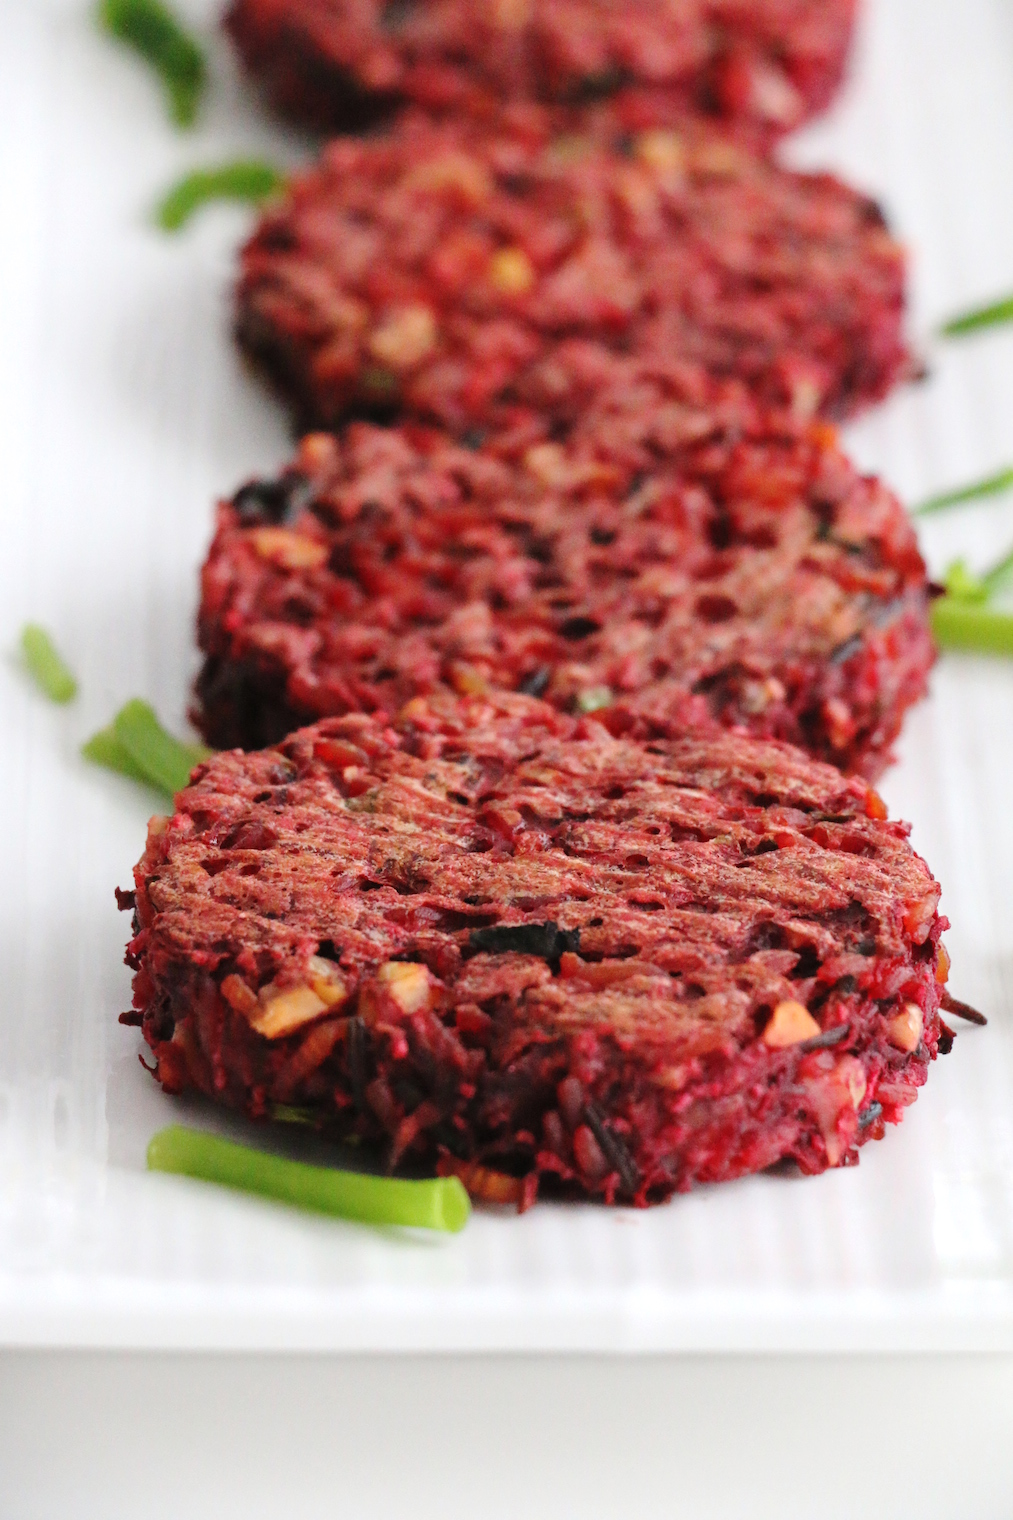 beet and wild rice burgers